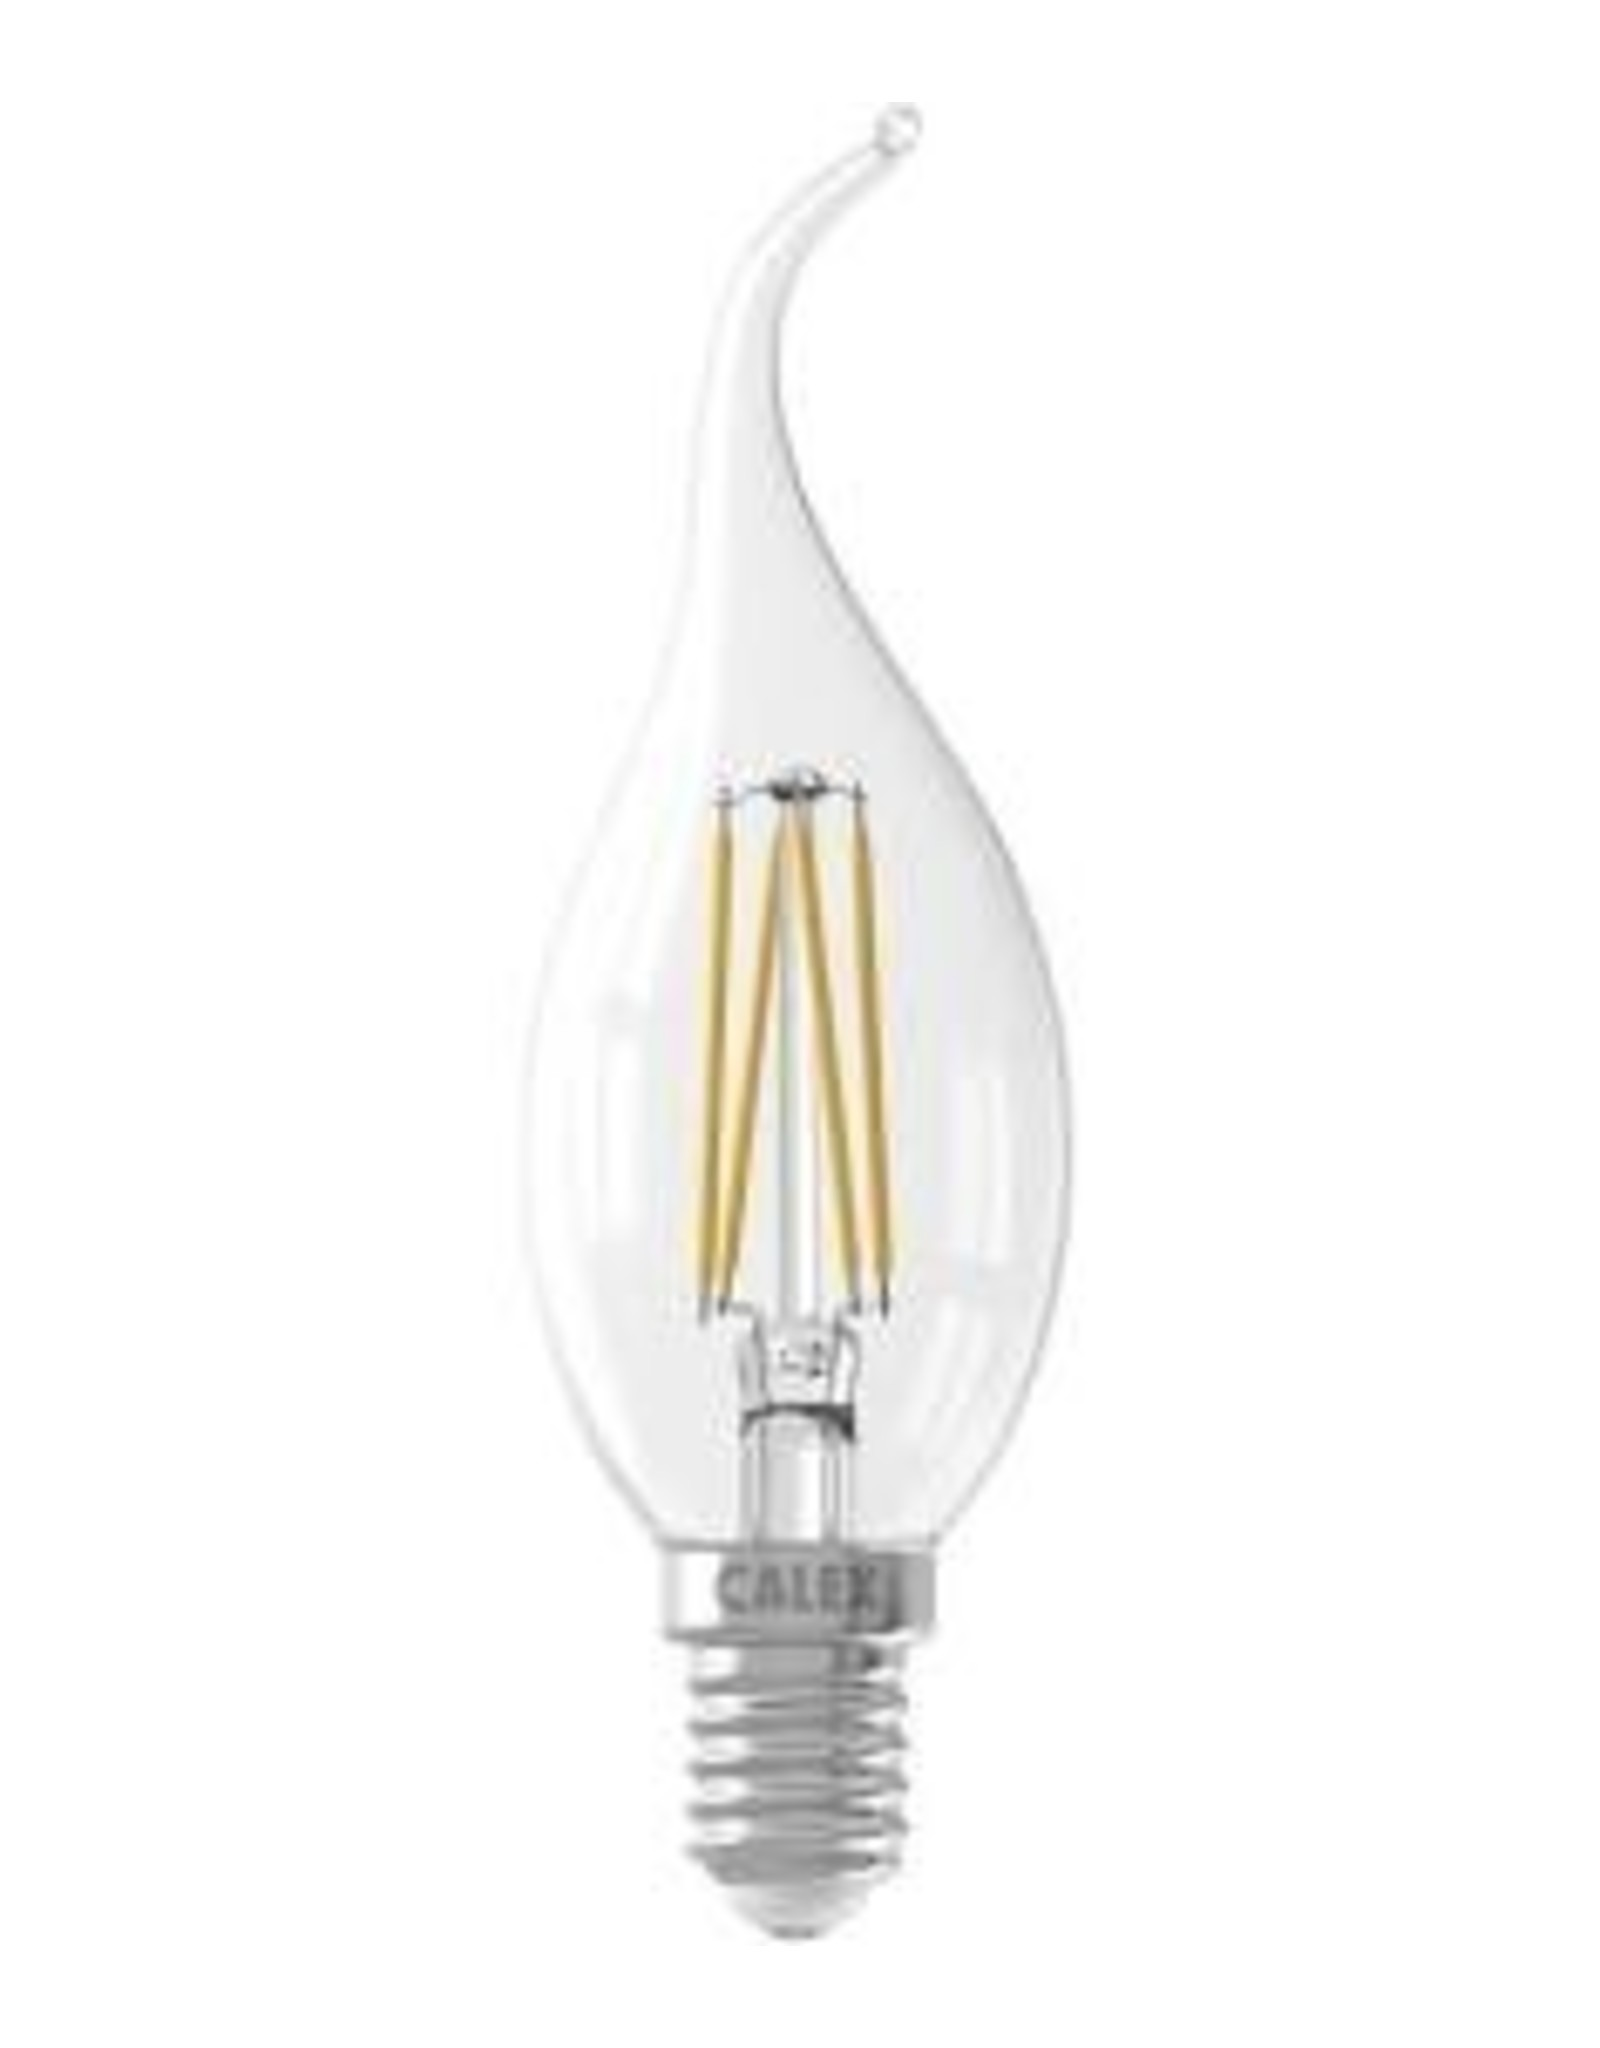 Calex LED Full Glass Filament Tip-Candle-lamp 220-240V 3,5W 350lm E14 BXS35, Clear 2700K CRI80 Dimmable, energy label A++